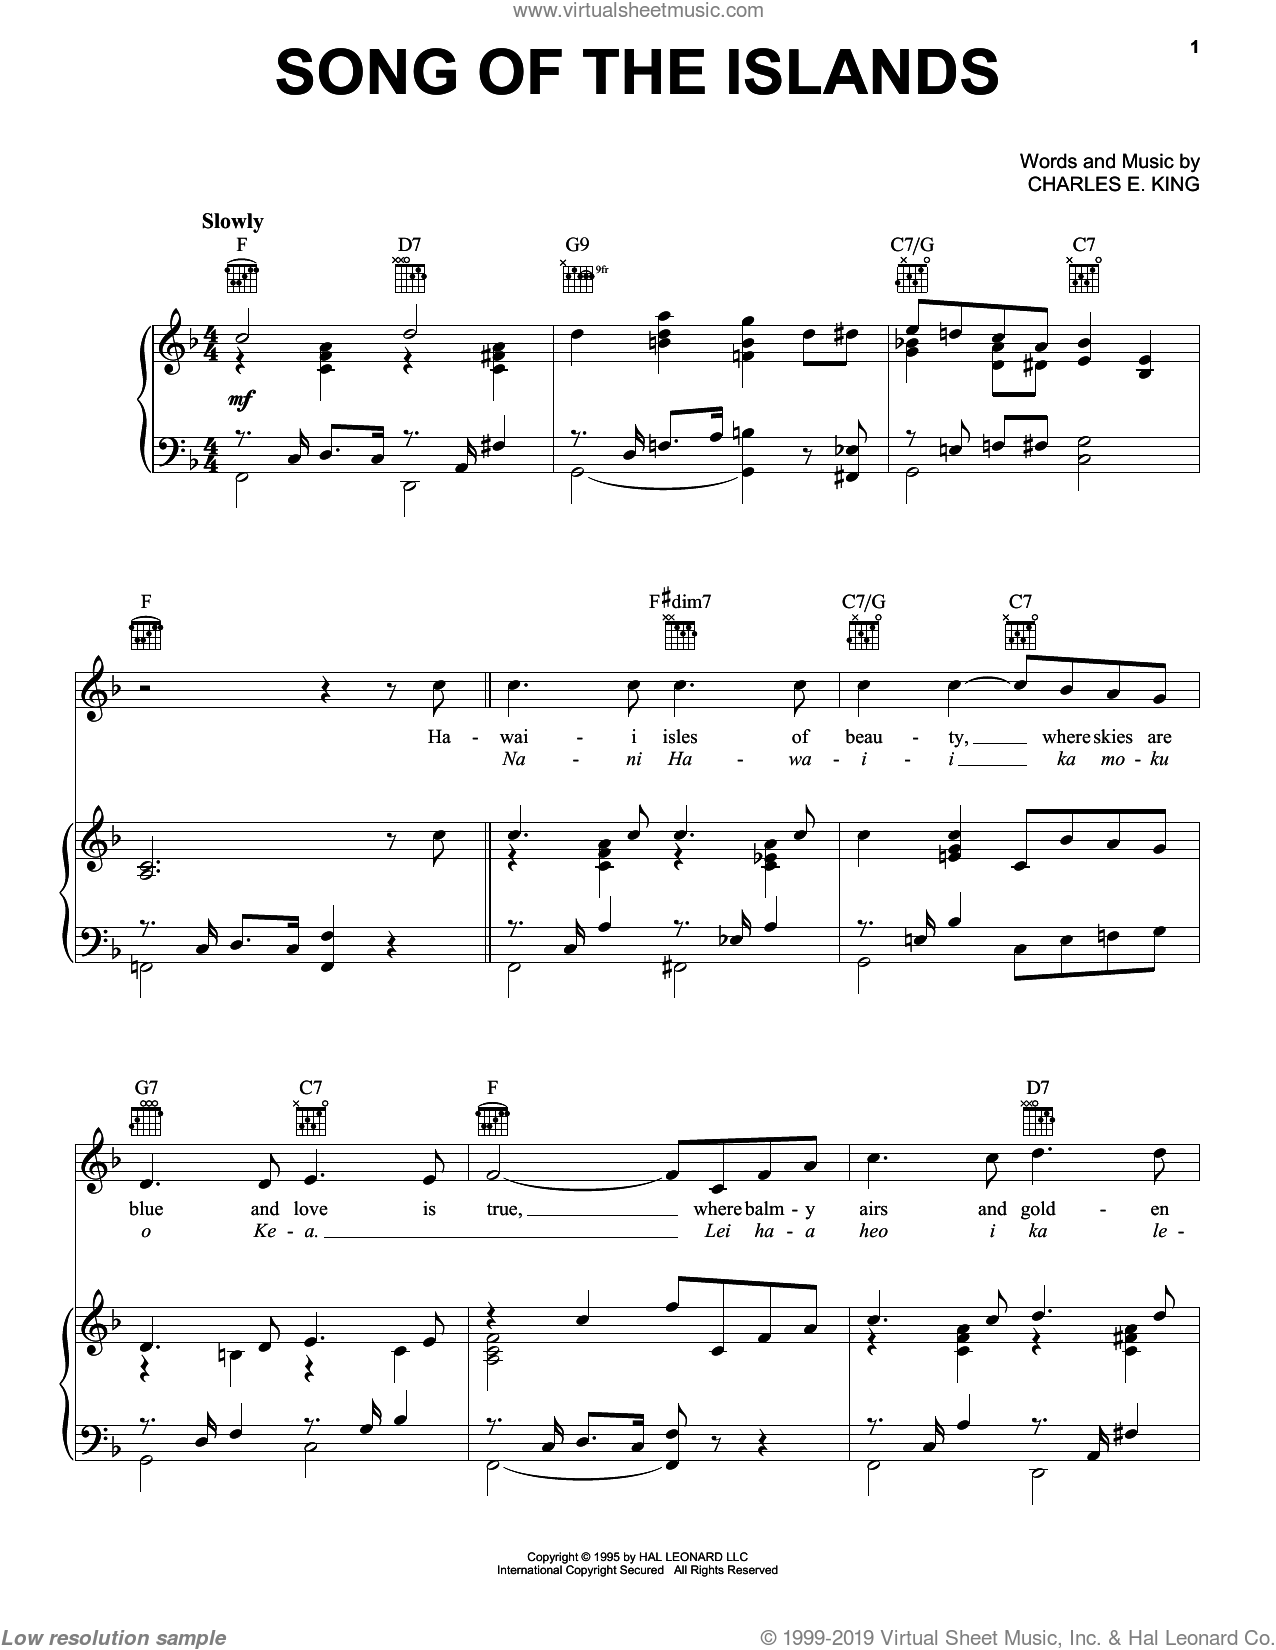 Song Of The Islands sheet music for voice, piano or guitar by Count Basie, Les Paul, Louis Armstrong and Charles E. King, intermediate voice, piano or guitar. Score Image Preview.